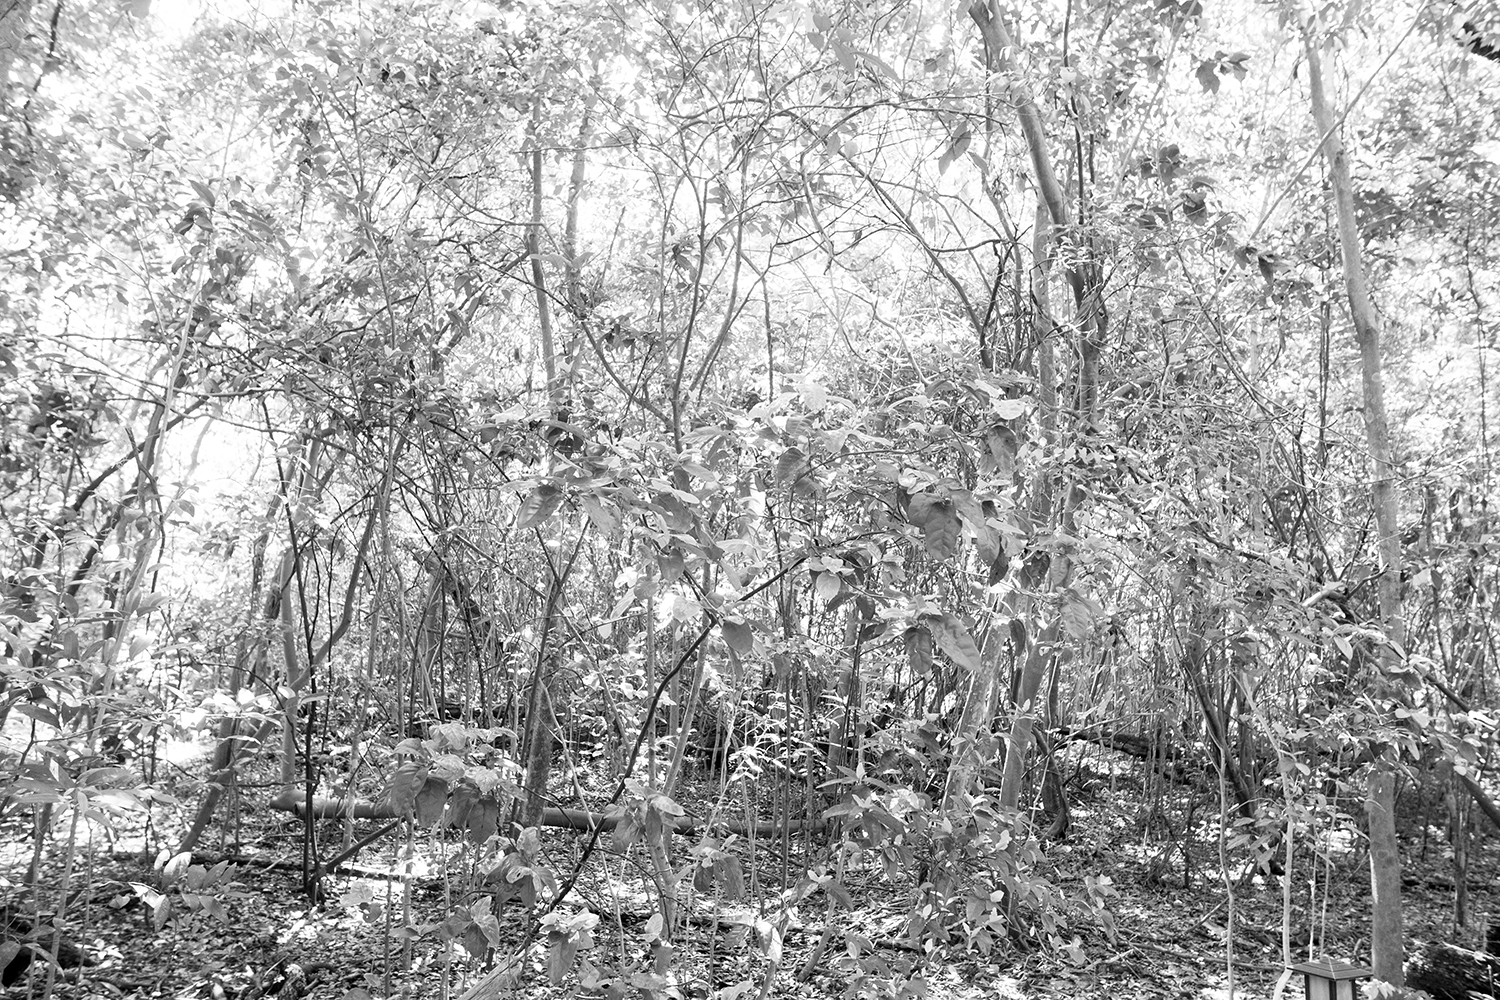 mangroves 2, 2017   ARCHIVAL PIGMENT PRINT ON COTTON RAG PAPER FRAMED DATED AND SIGNED ON VERSO  SIZES 45 X 30 INCHES 36 X 24 INCHES